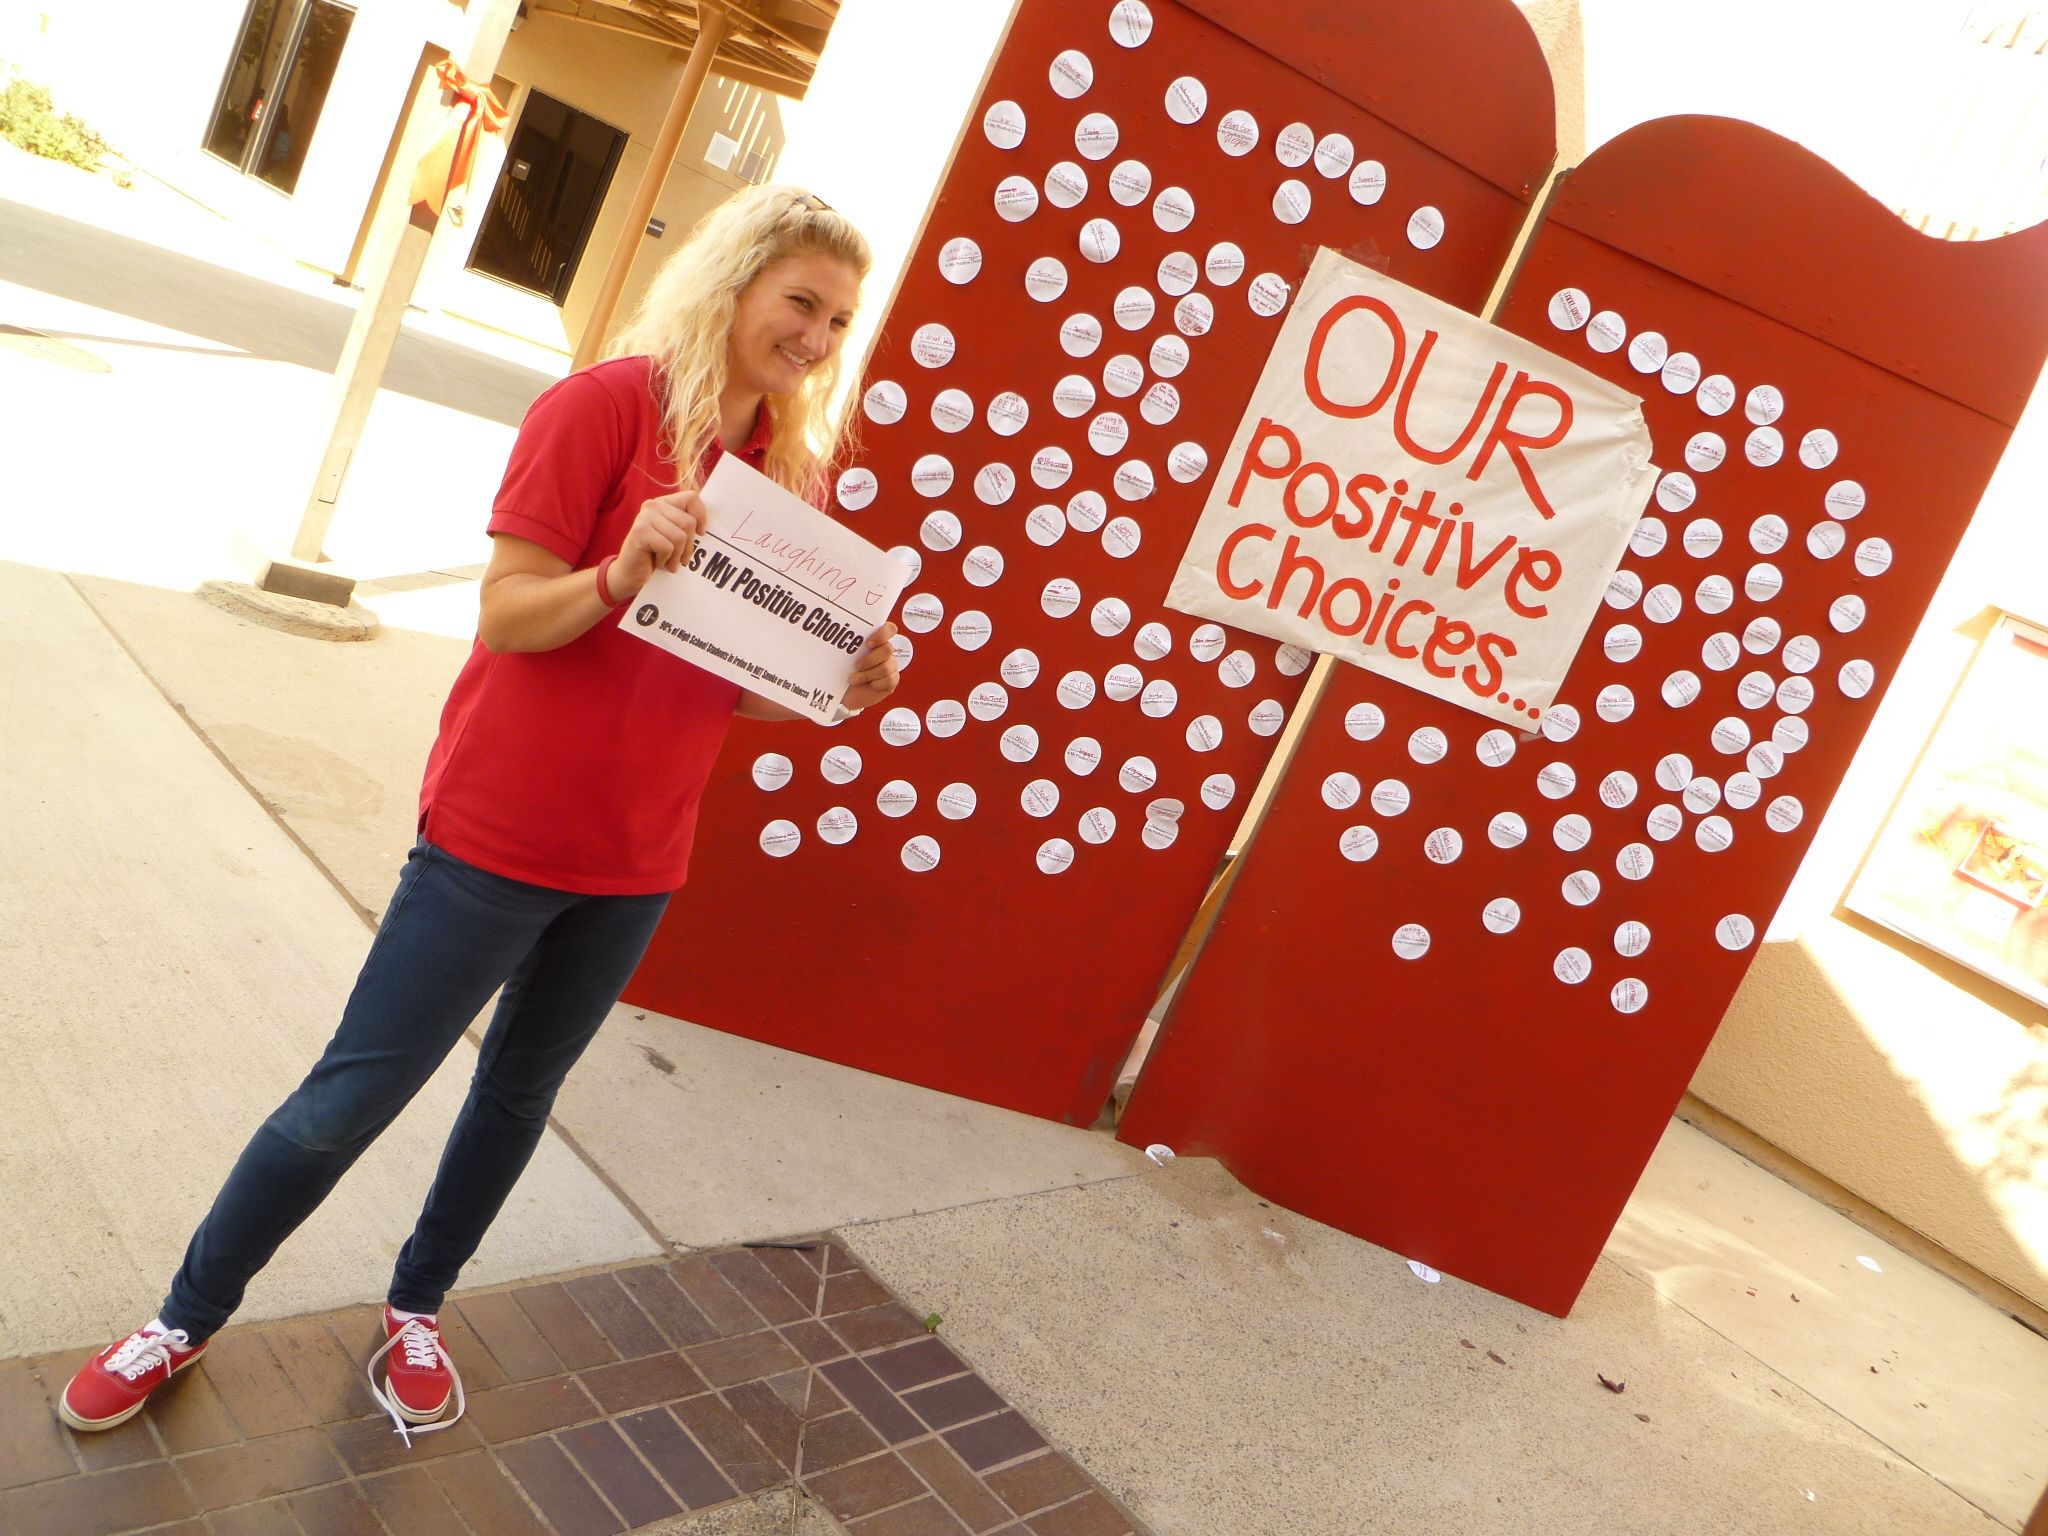 Students Shared Their Positive Choices During Red Ribbon